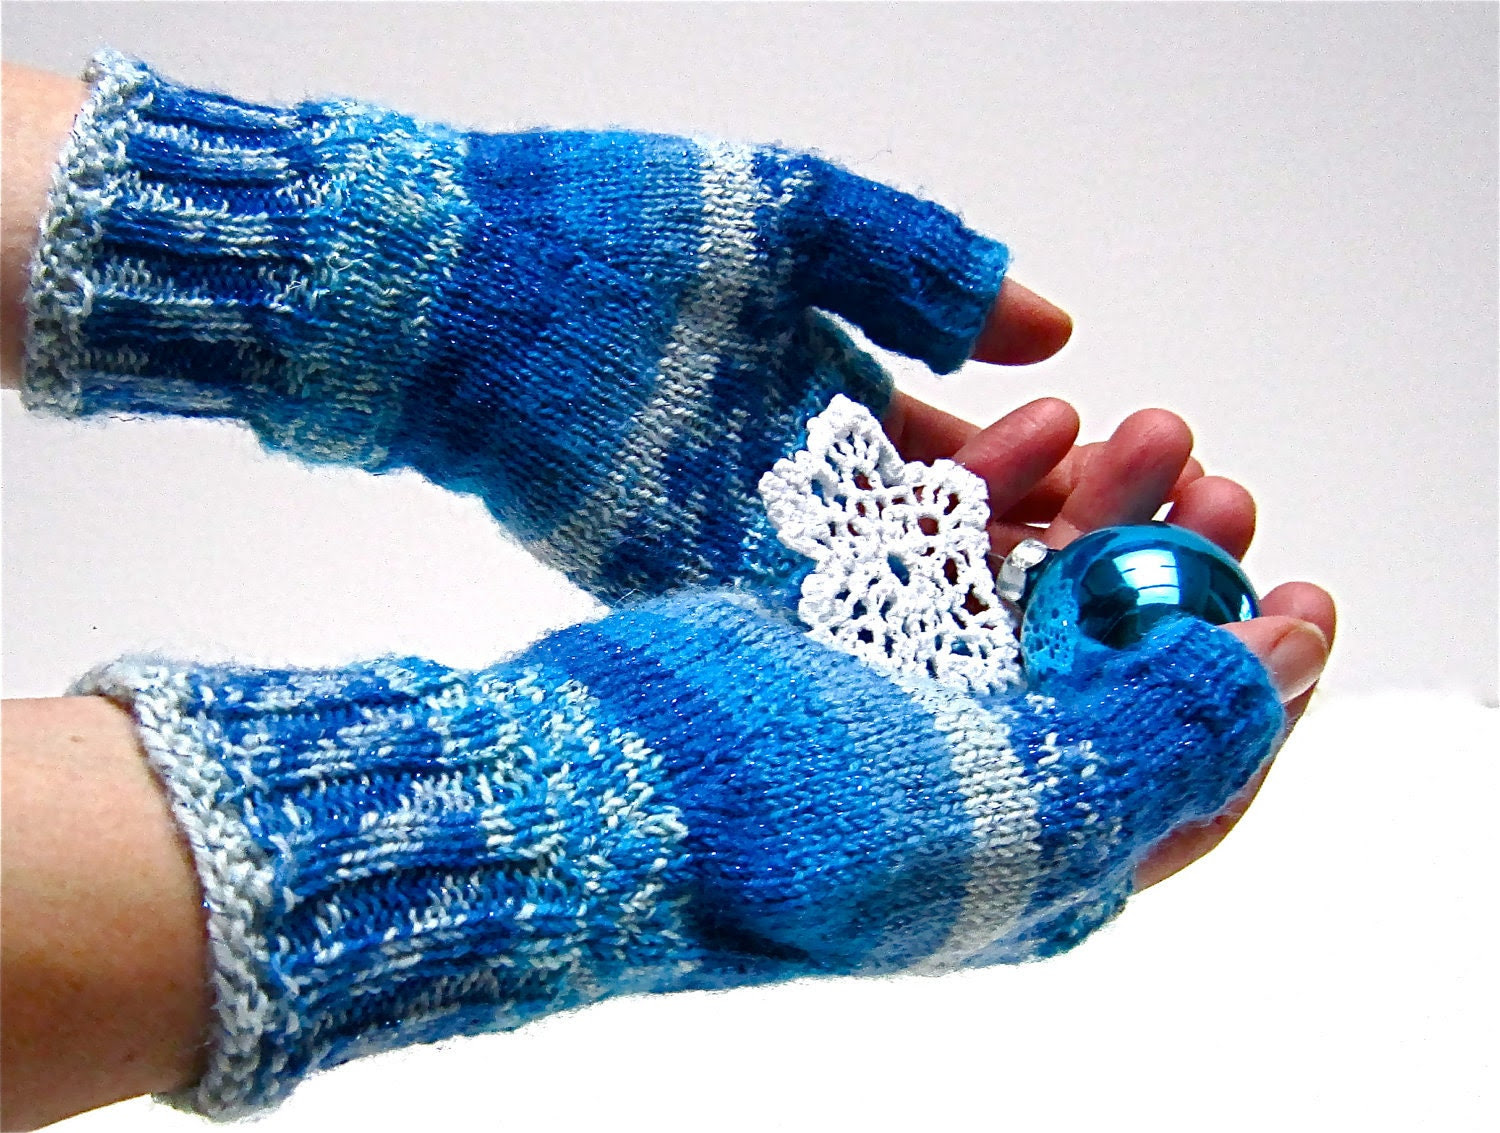 Fingerless Gloves 'Jack Frost' Faire Isle Ice Blue White Texting Mitts Gauntlets Wrist Warmers wool. MADE TO ORDER - JanetLongArts